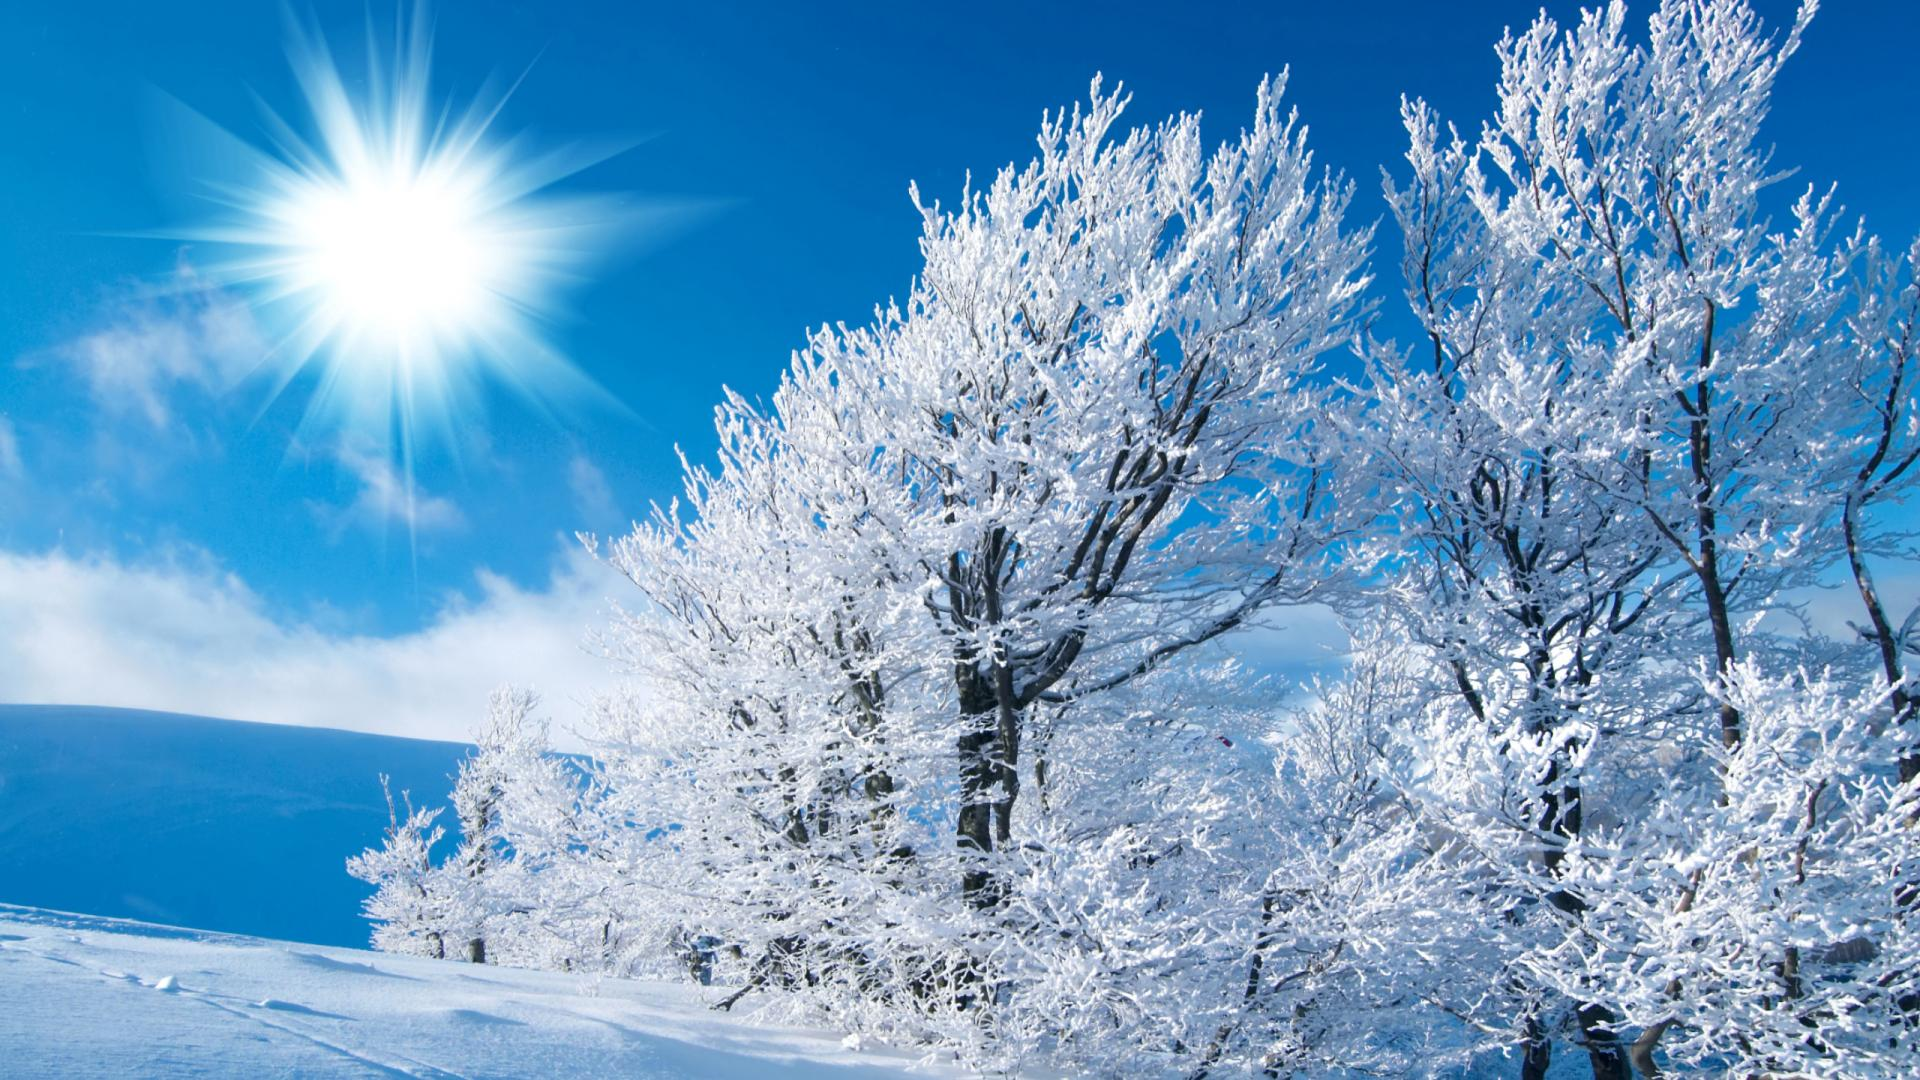 Backgrounds Winter Desktop Wallpapers For Windows 7 Mac 1920x1080